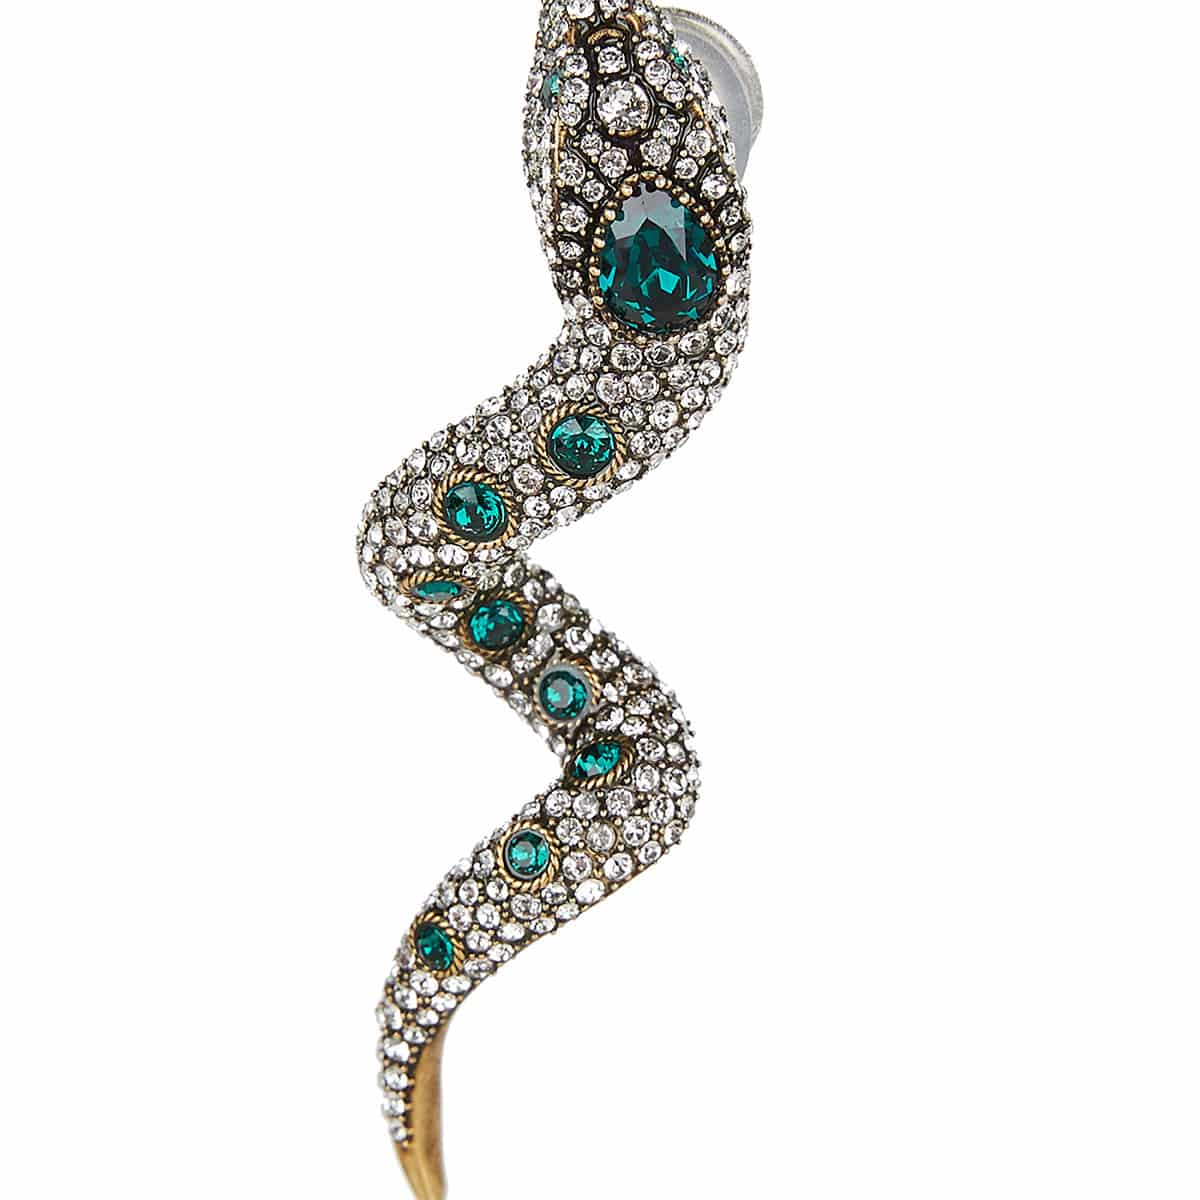 Crystal-embellished snake earrings